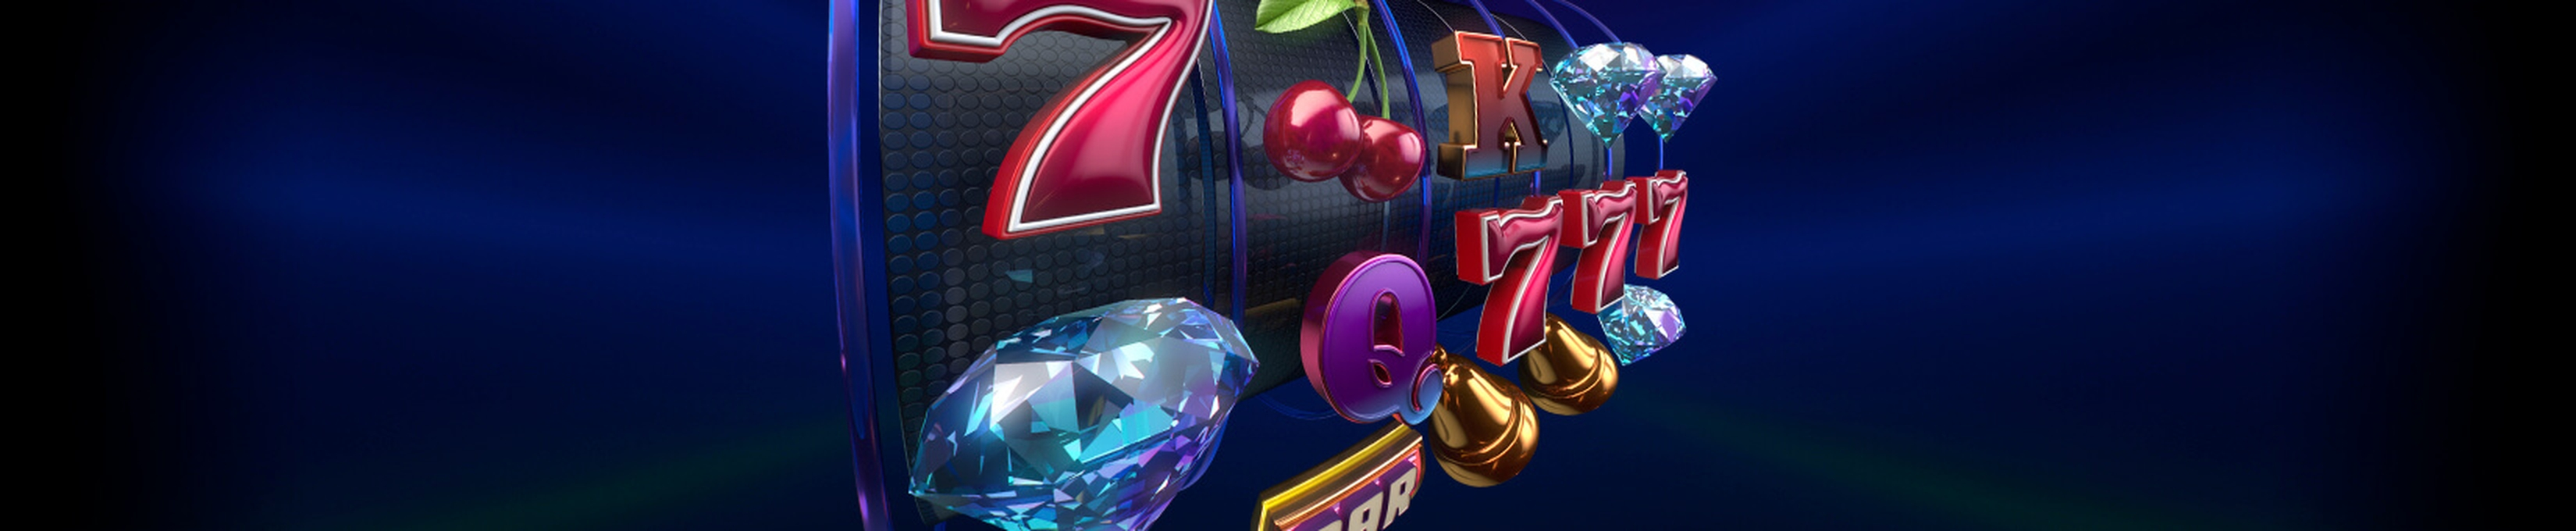 The Stars Genie Online Slot Demo Game by The Stars Group